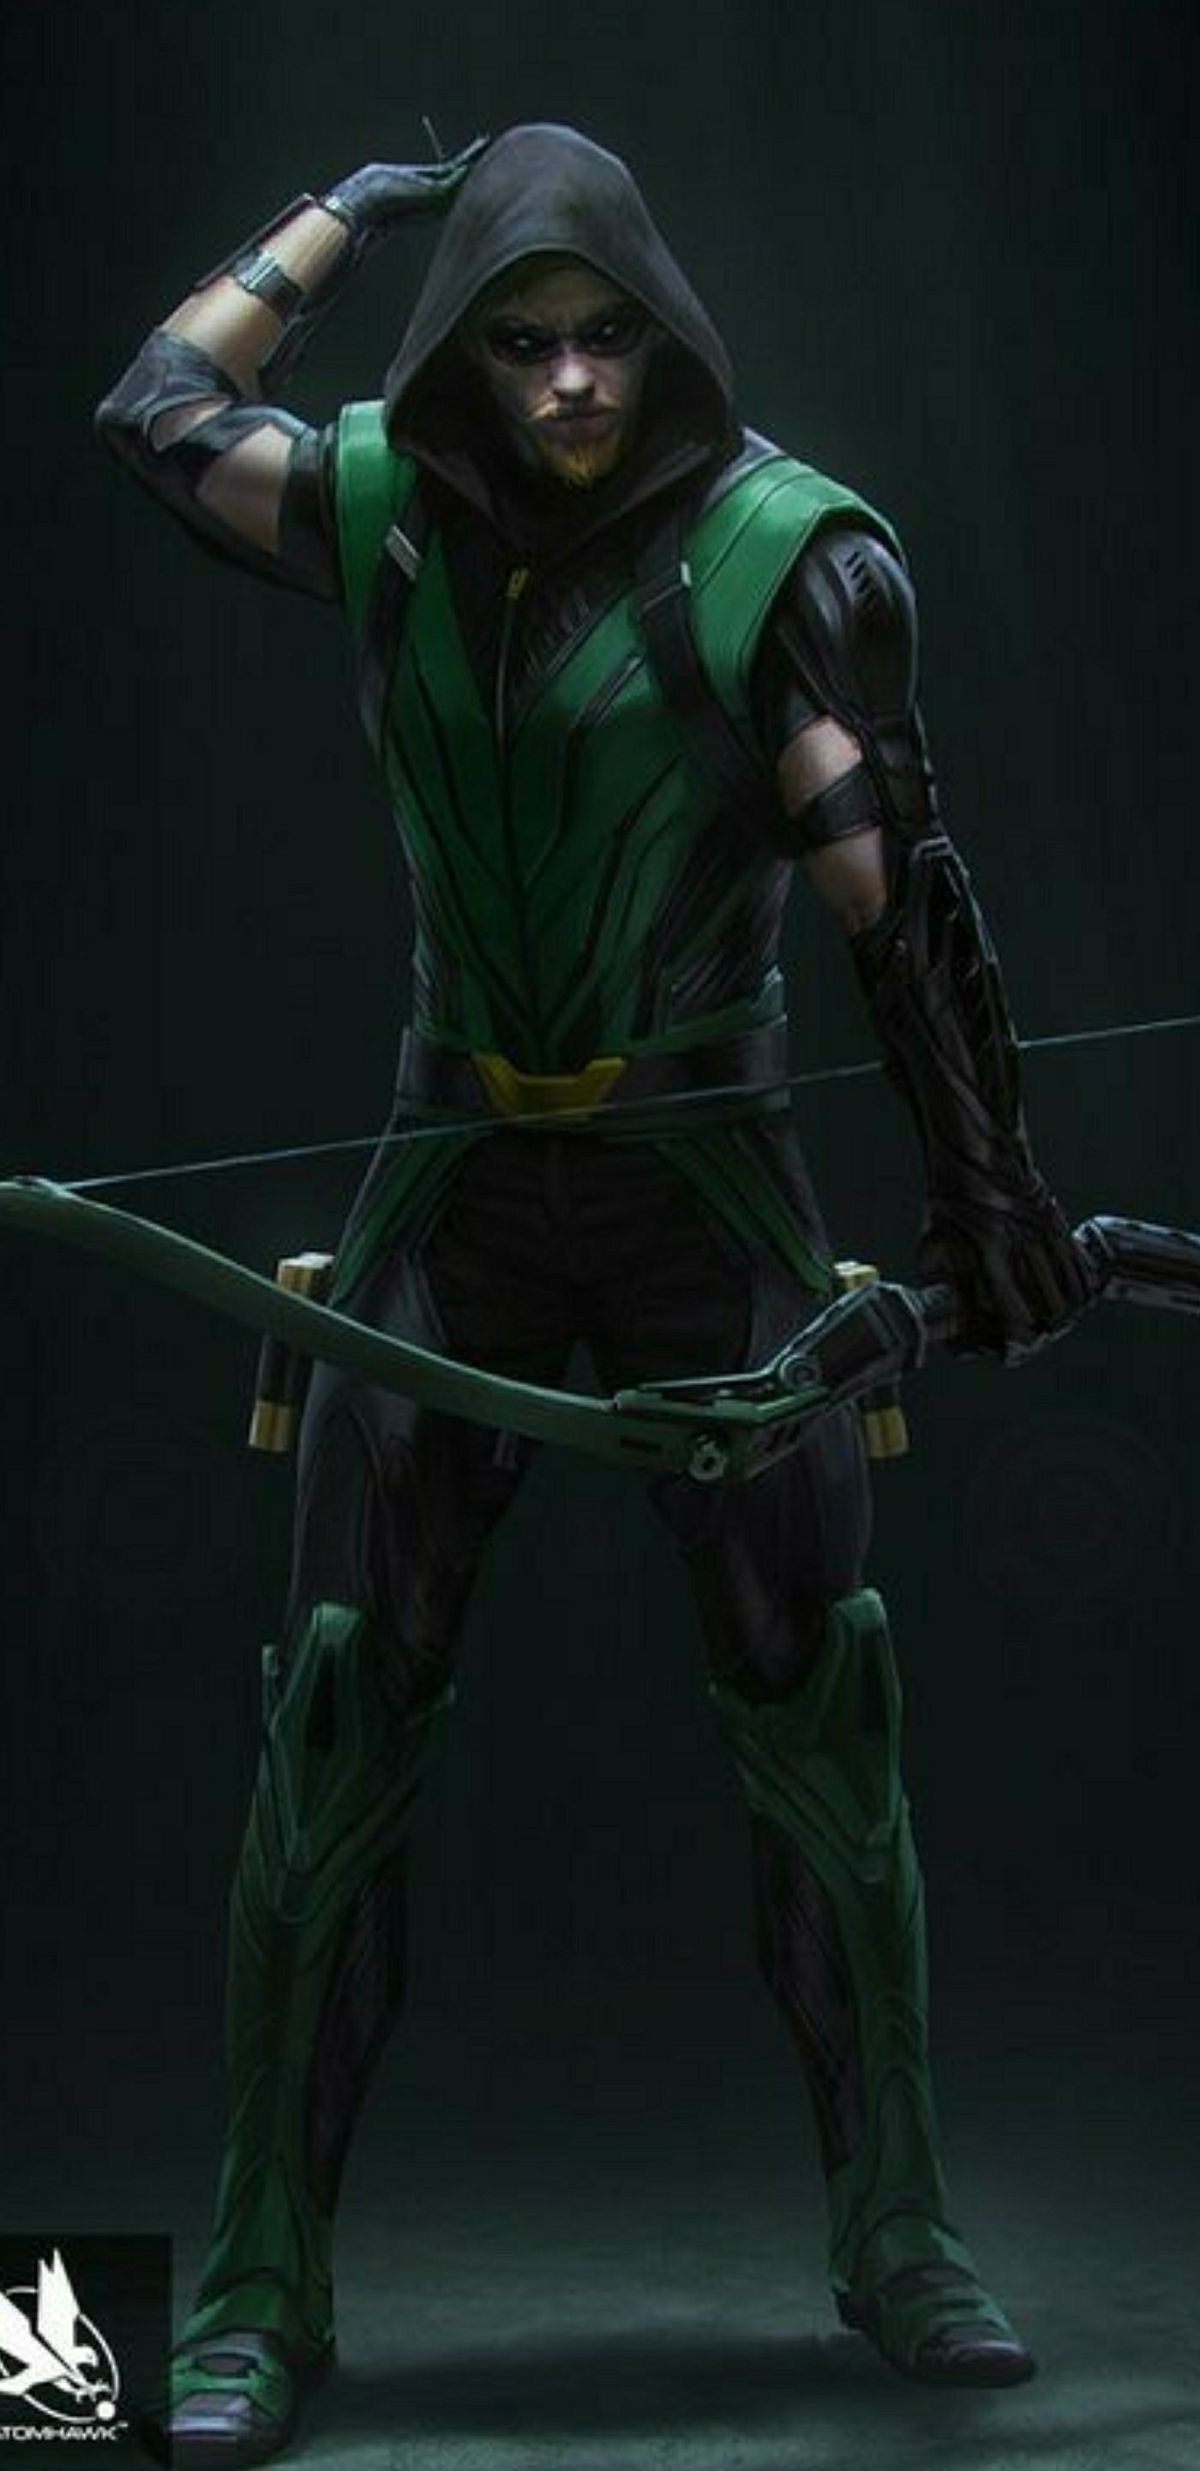 Green Arrow B&W Concept - Characters & Art - Injustice ... |Injustice Black Canary Drawing